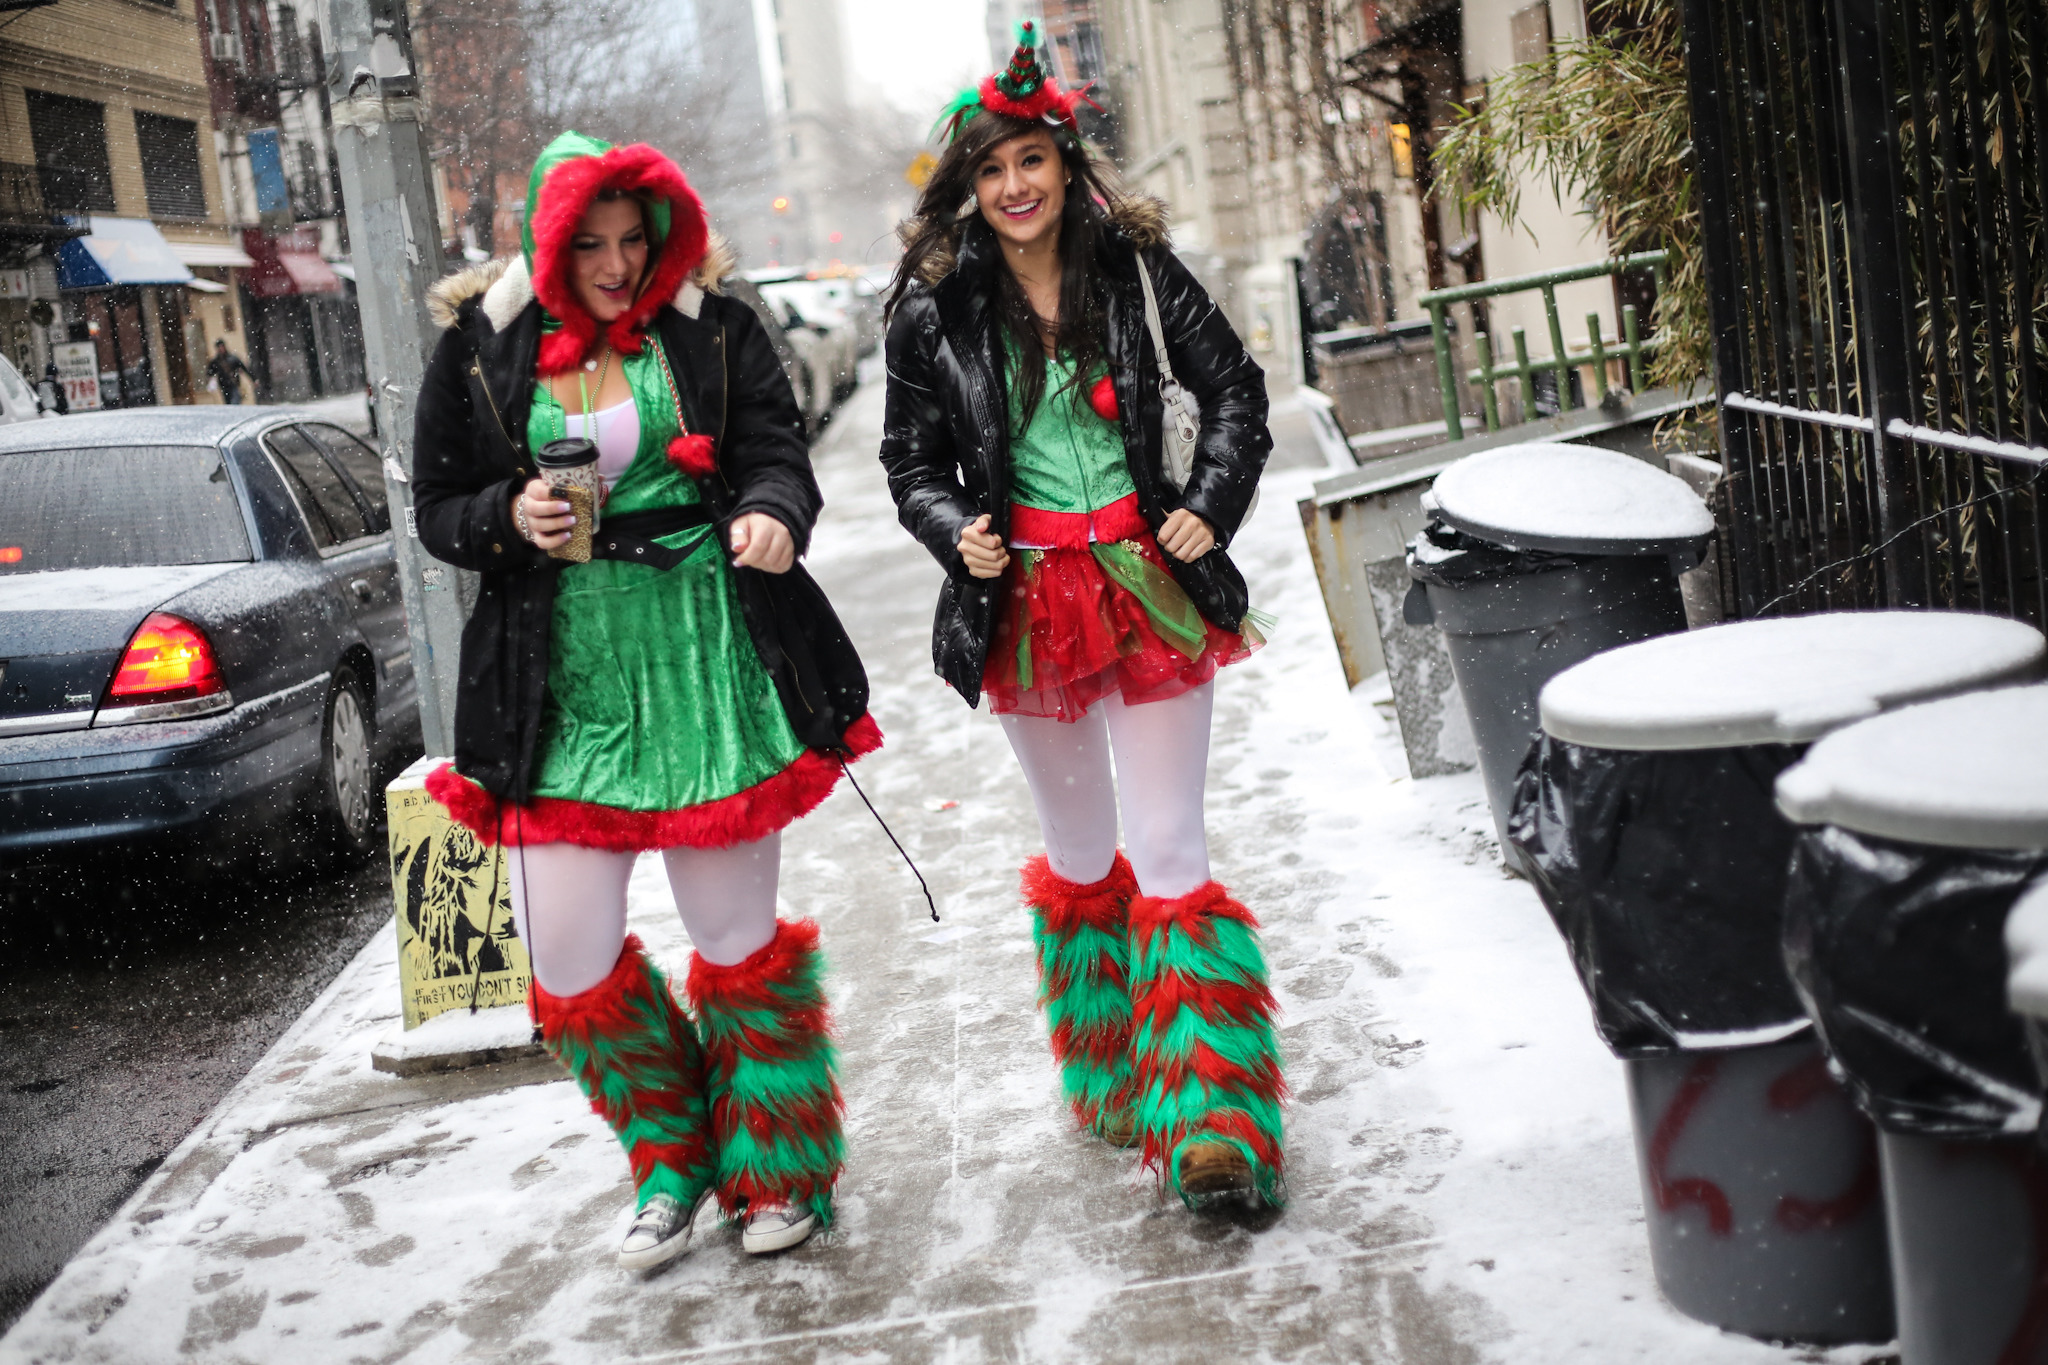 Tomorrow's SantaCon festivities limited to participating bars only